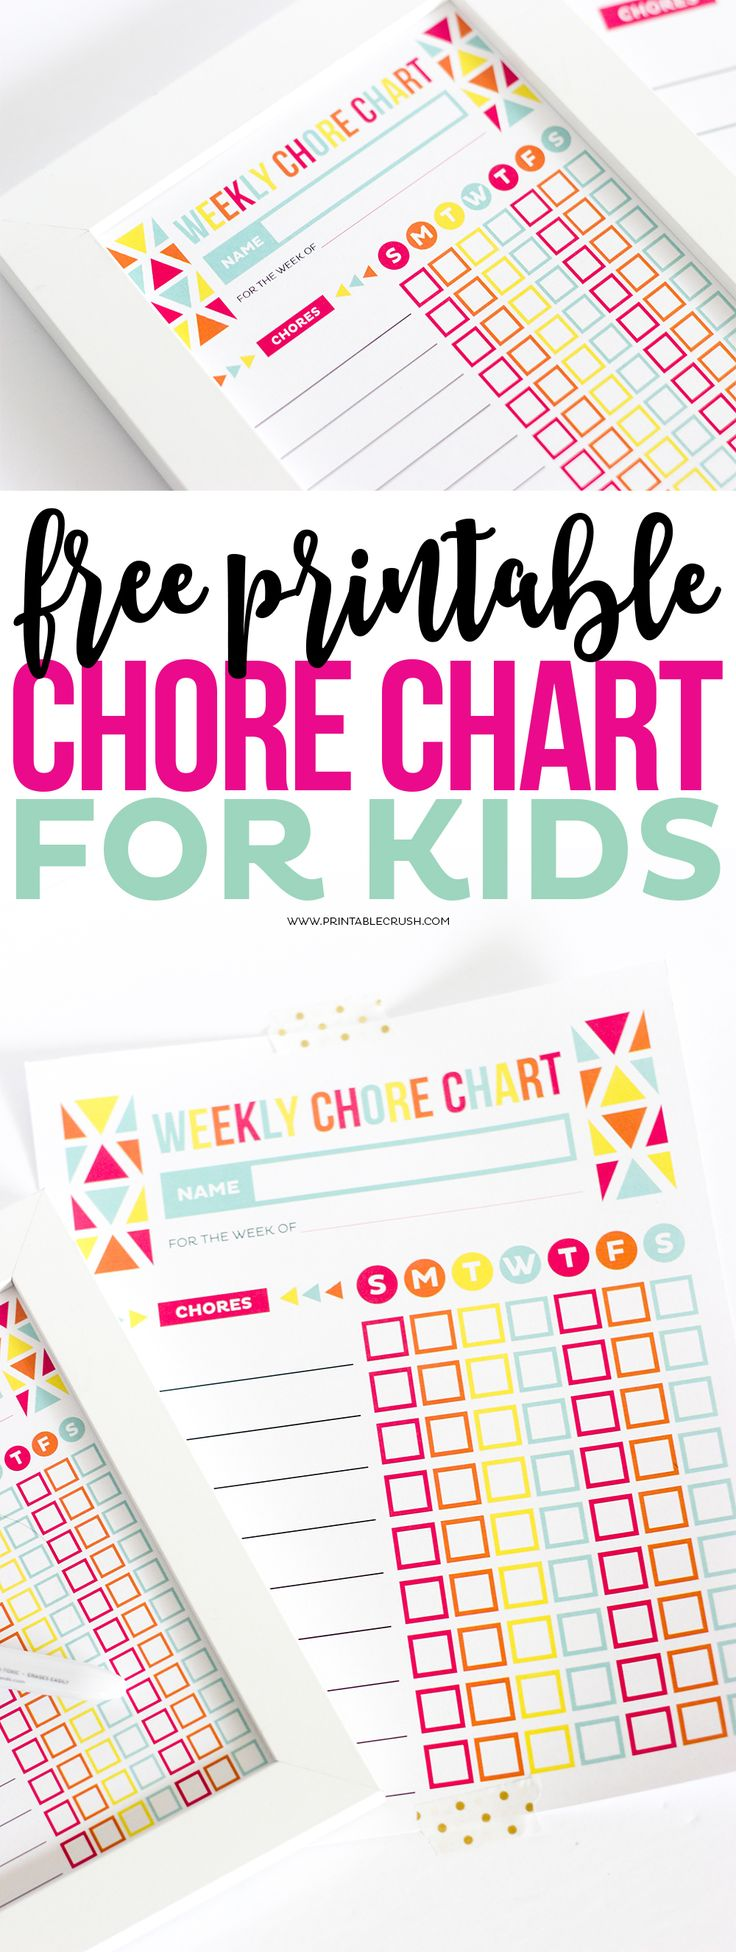 Download this FREE Printable Chore Chart for Kids to keep track of the chores your children are completing throughout the week. It will help them learn to be responsible and you can reward them for their behavior.